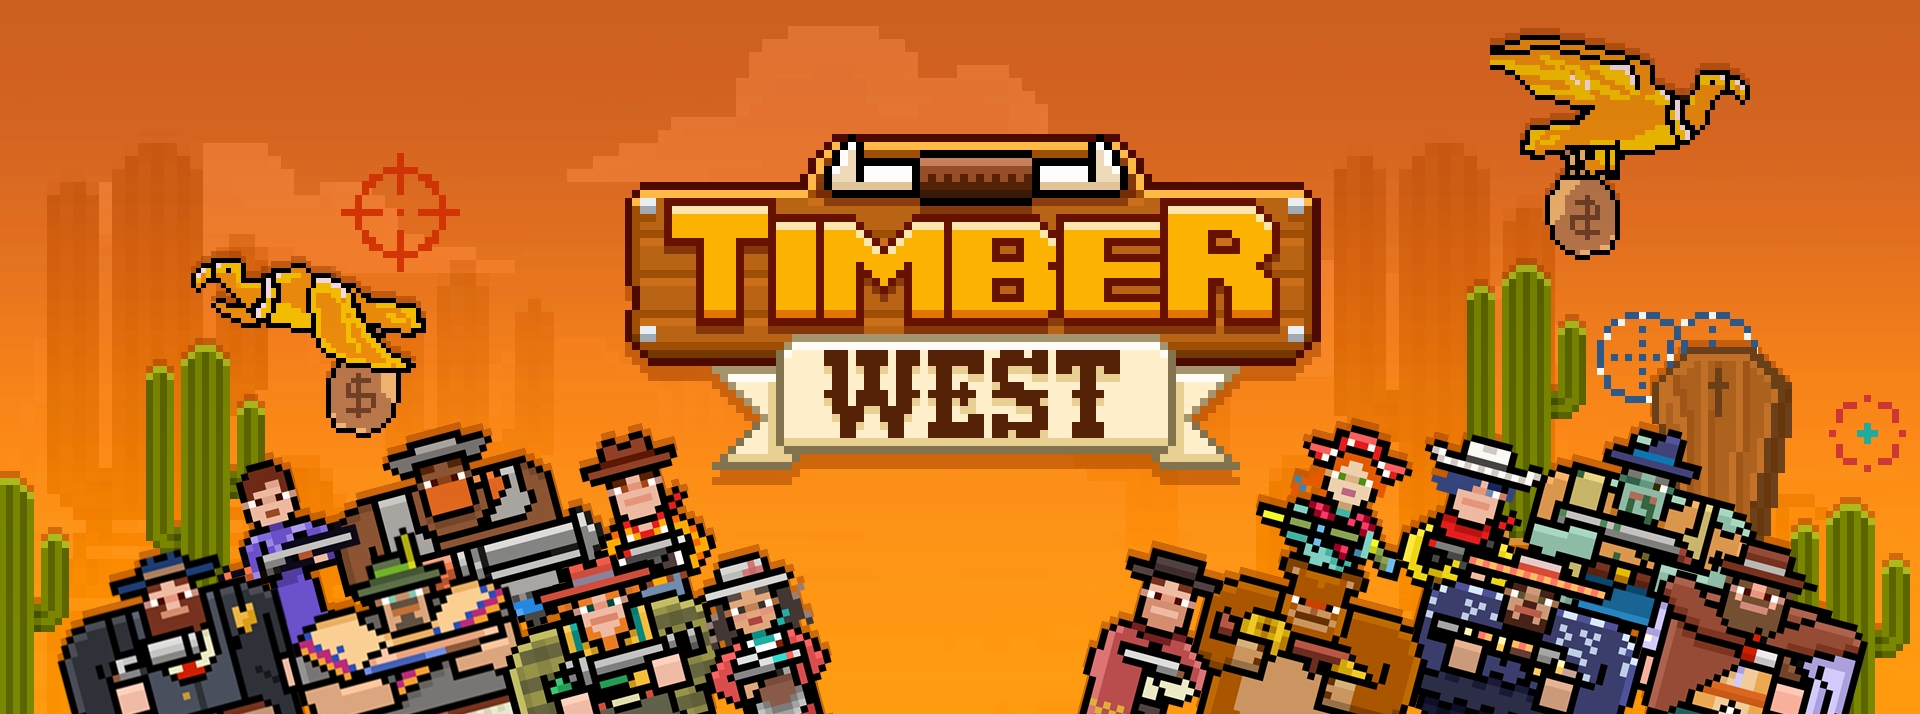 Timber West